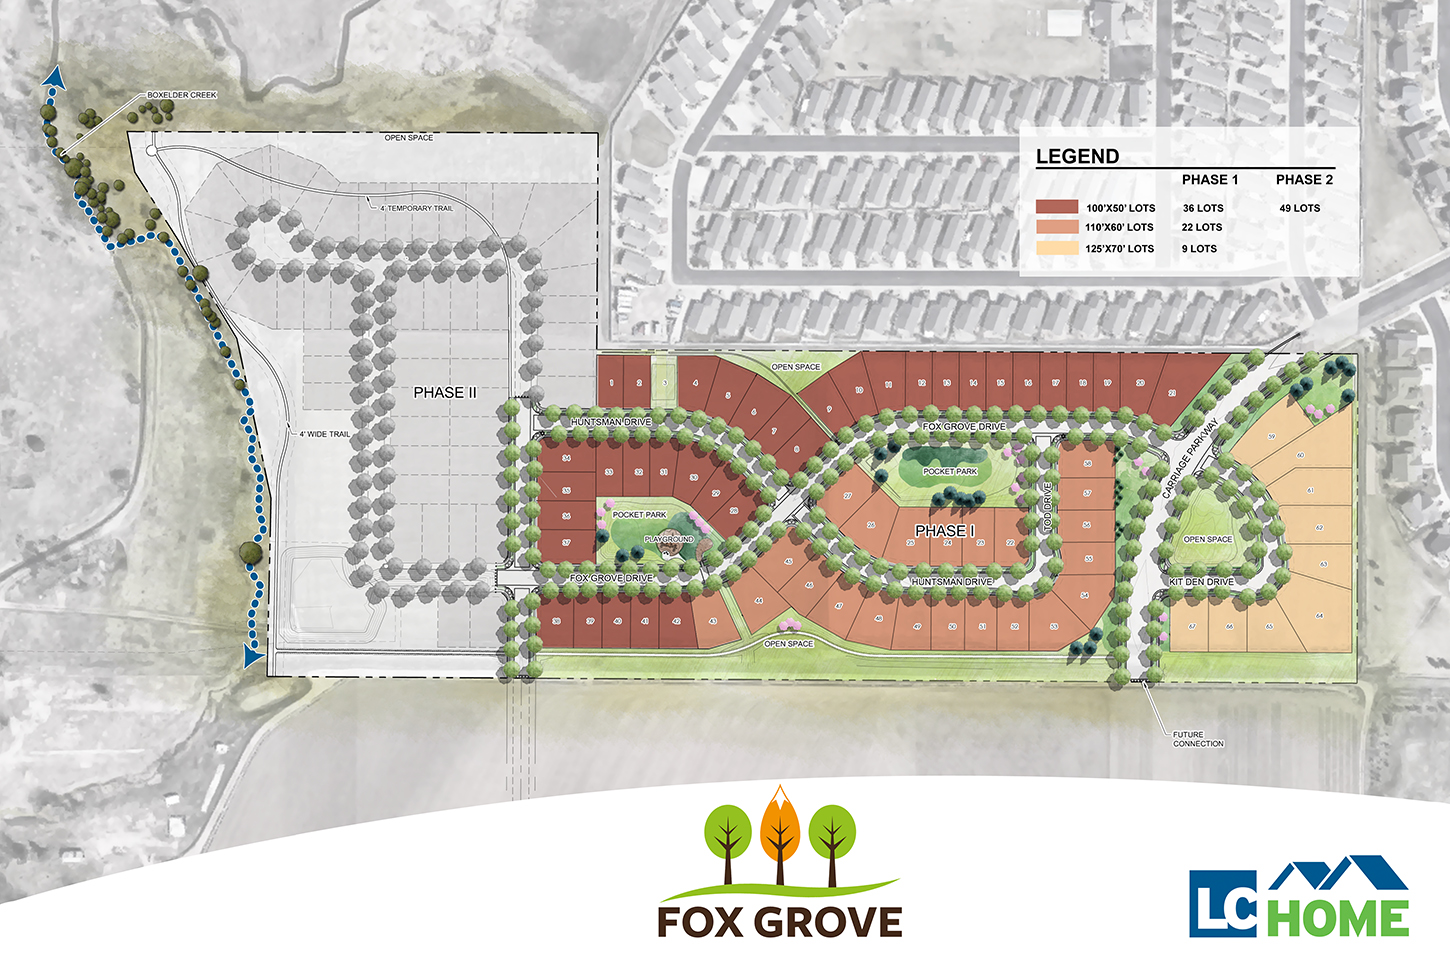 Fox_grove_plan_rendering_-_web